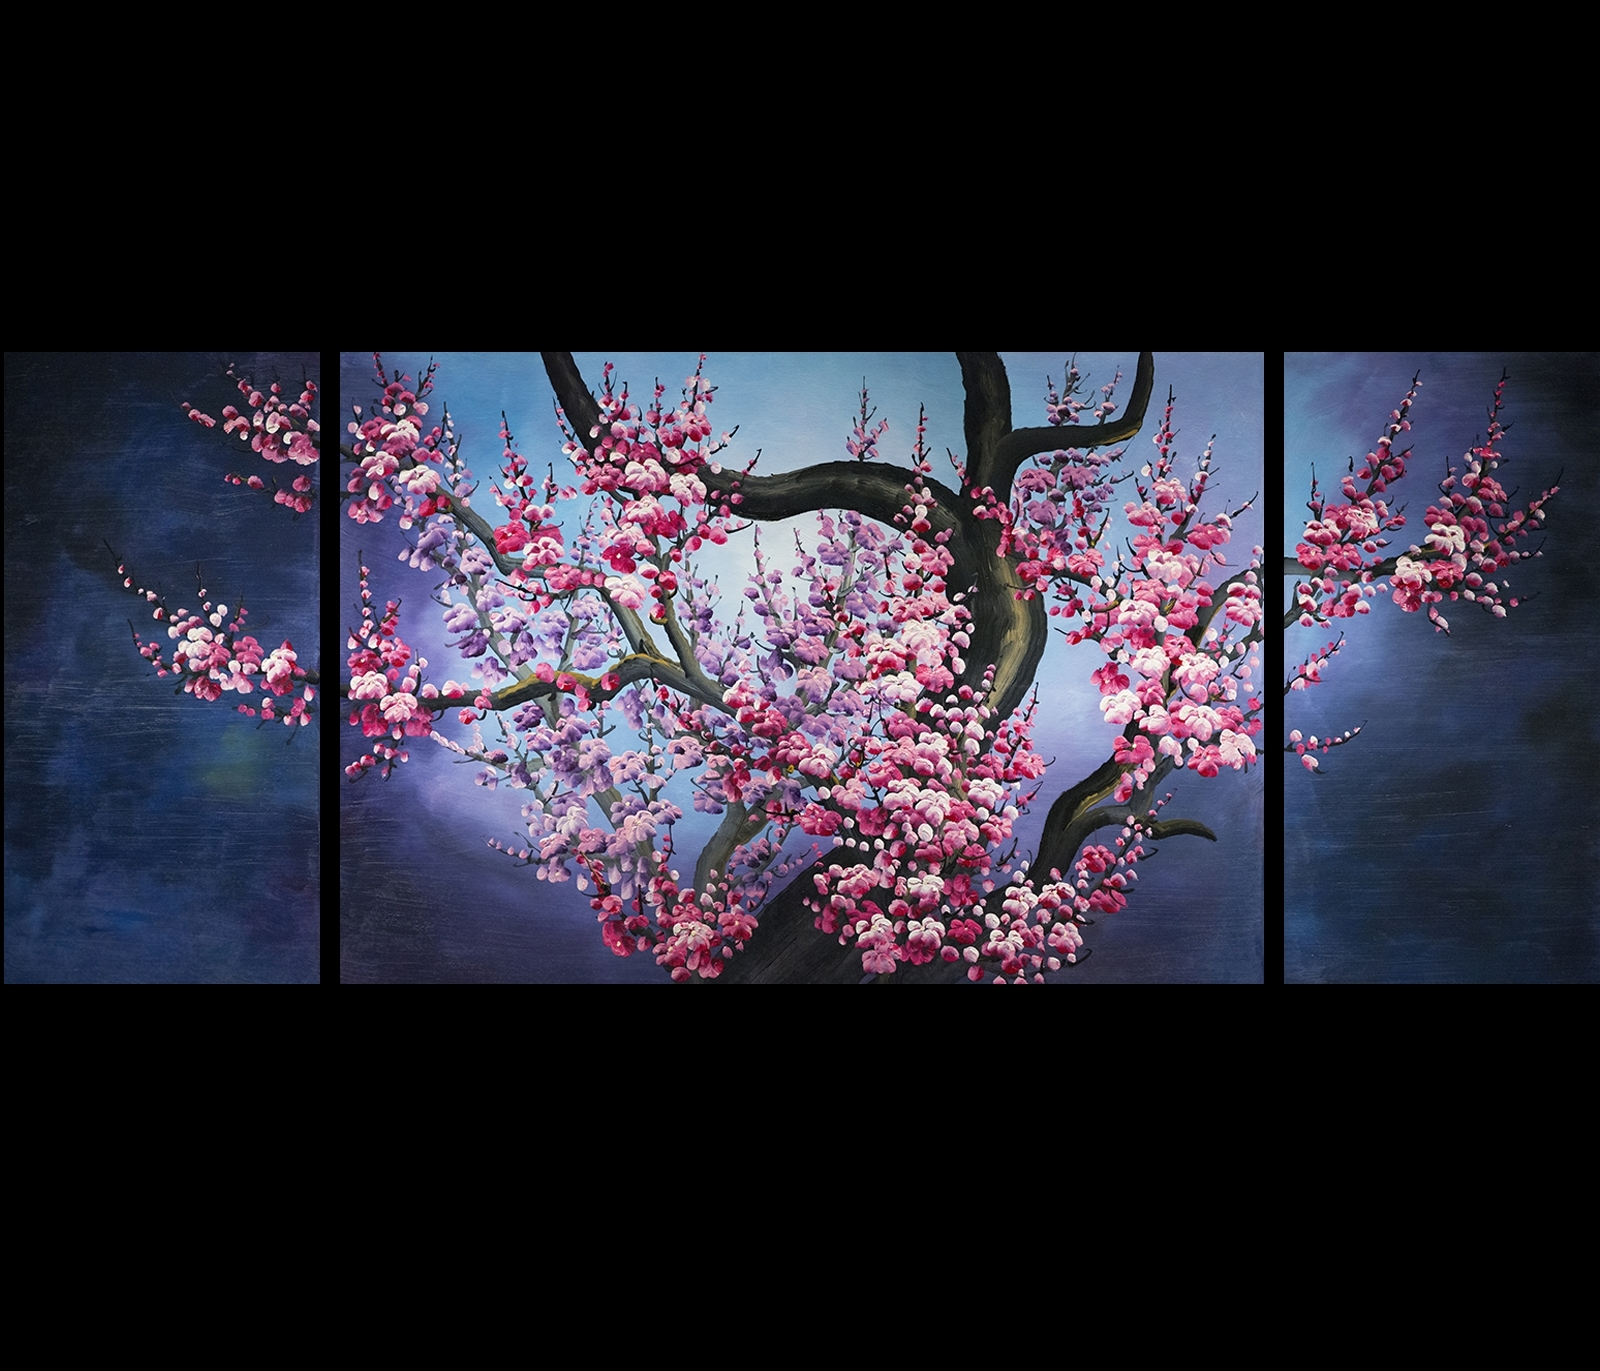 Japanese Cherry Blossom Painting Abstract Art Canvas Wall Art Within Most Current Cherry Blossom Oil Painting Modern Abstract Wall Art (View 10 of 20)